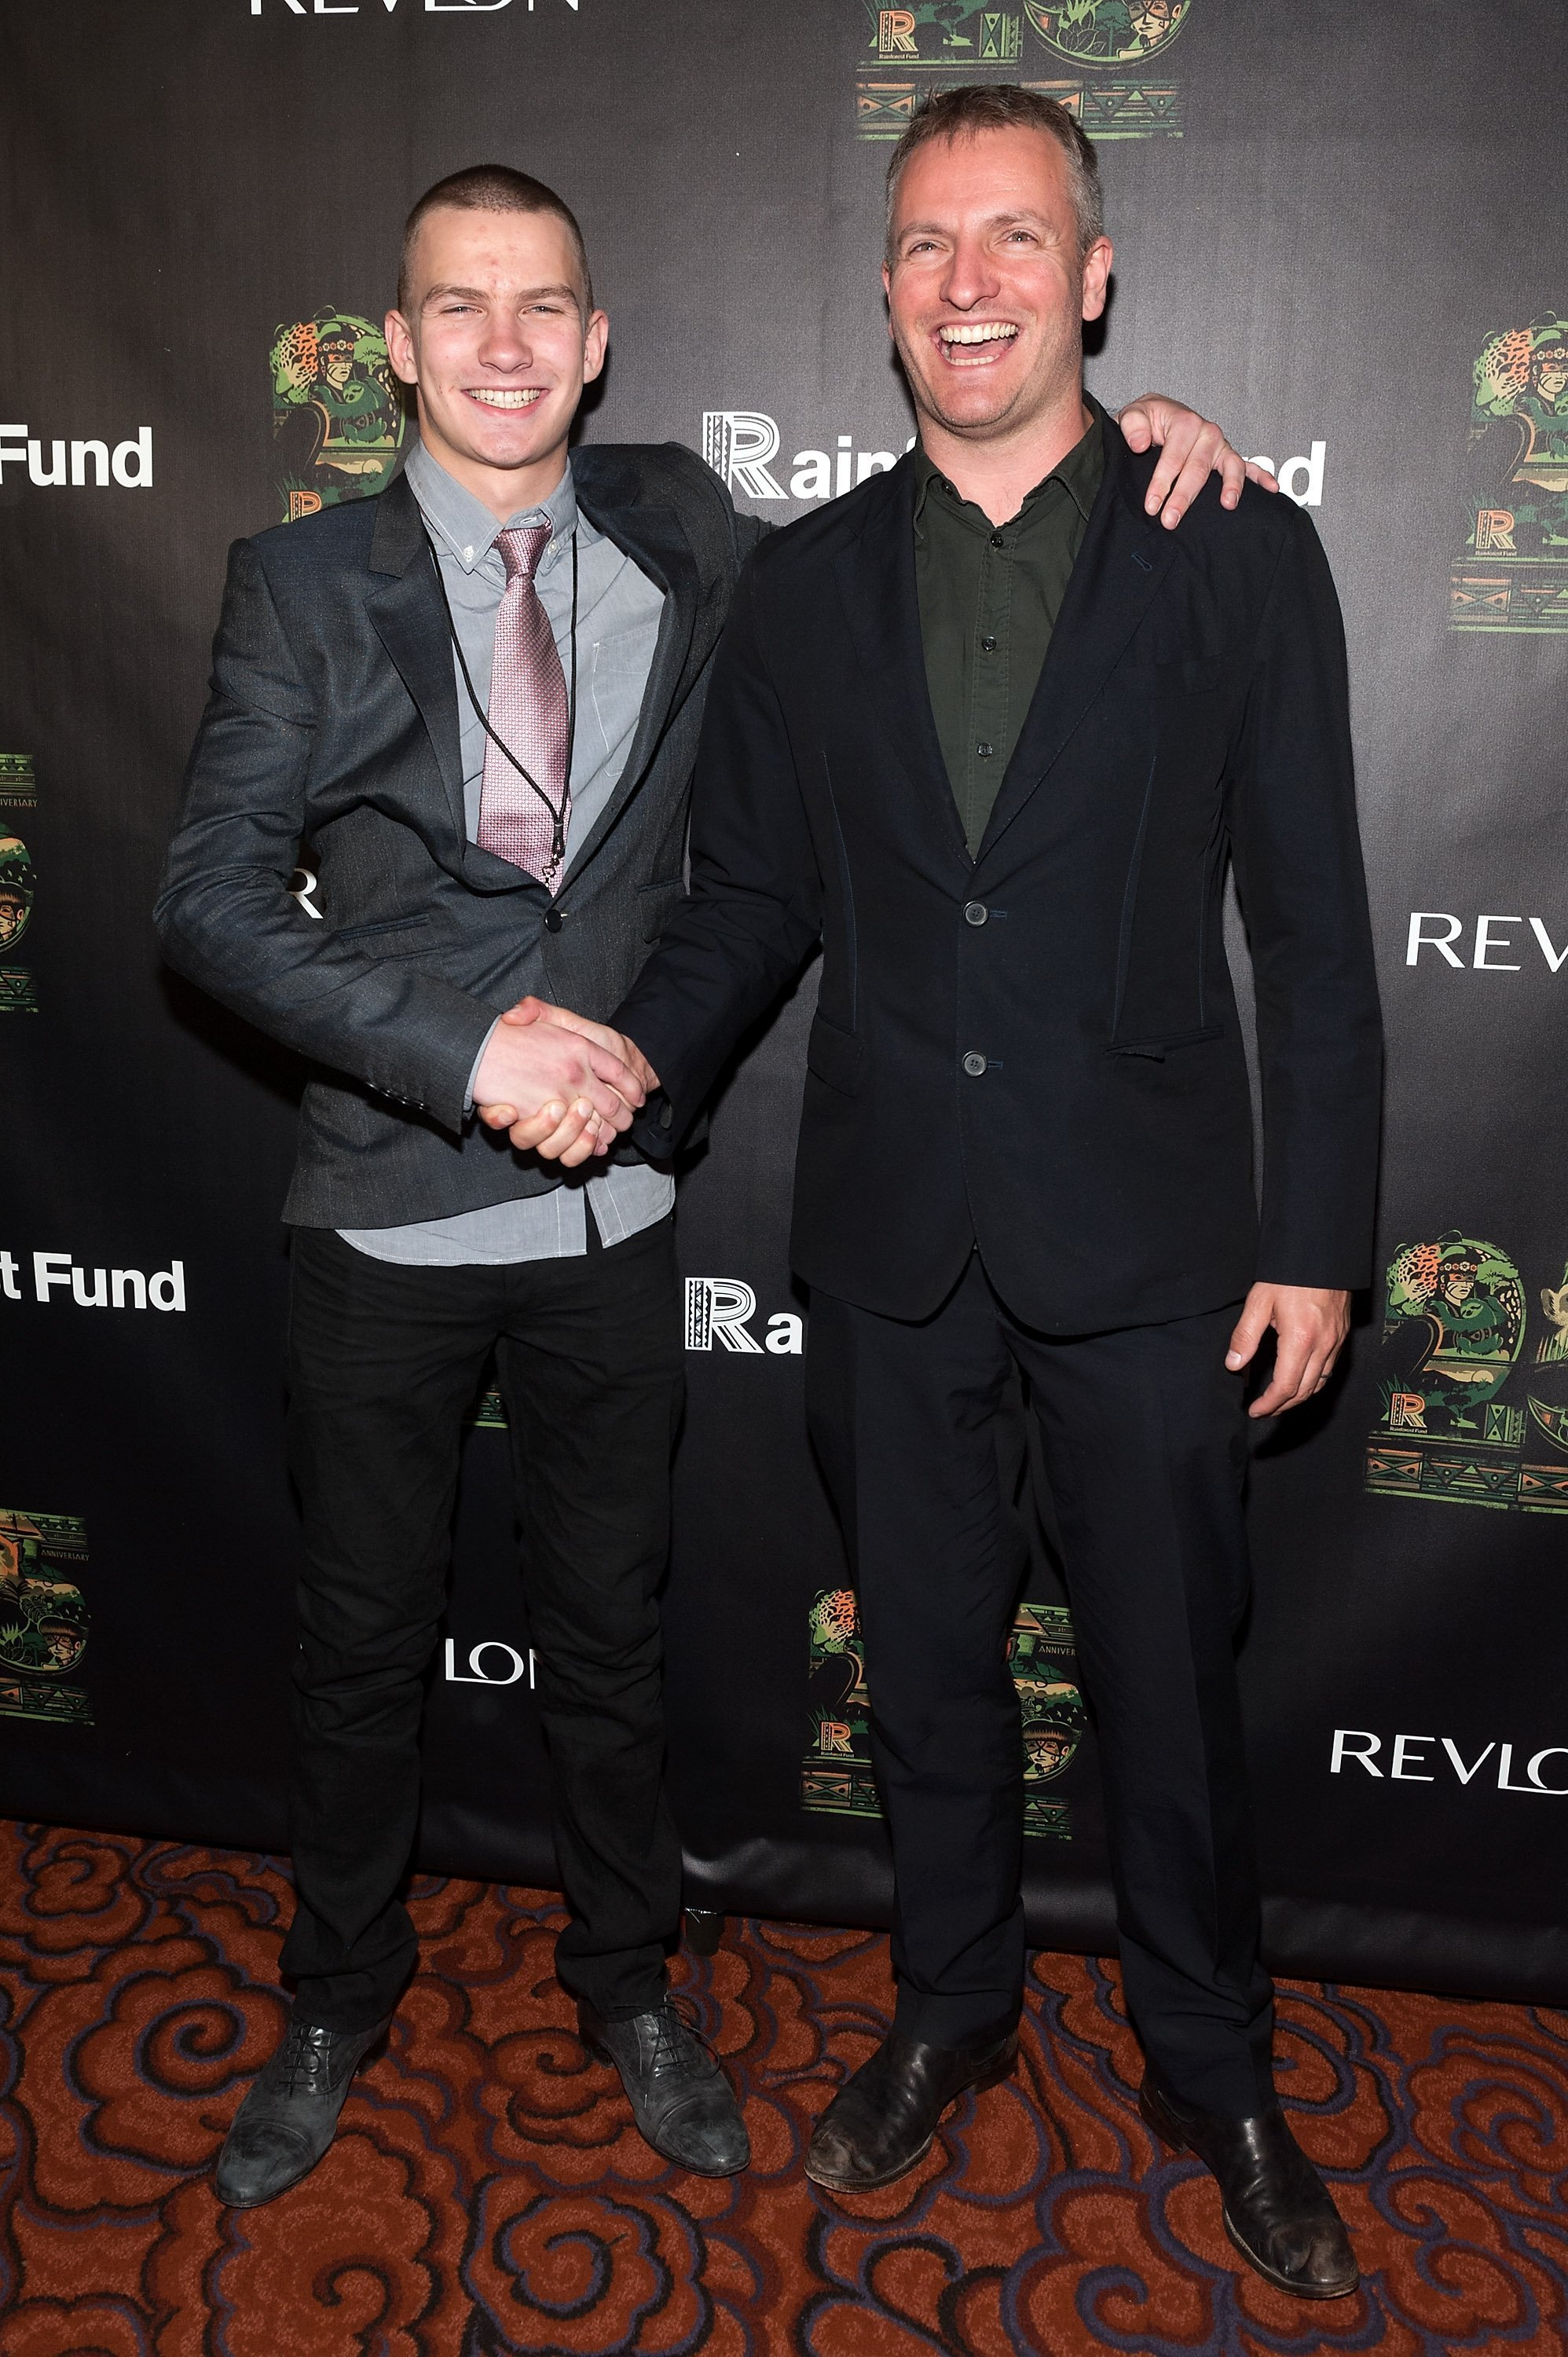 Giacomo Sumner (L) and Joe Sumner attend the after party for the 25th Anniversary concert for the Rainforest Fund on April 17, 2014. | Source: Getty Images